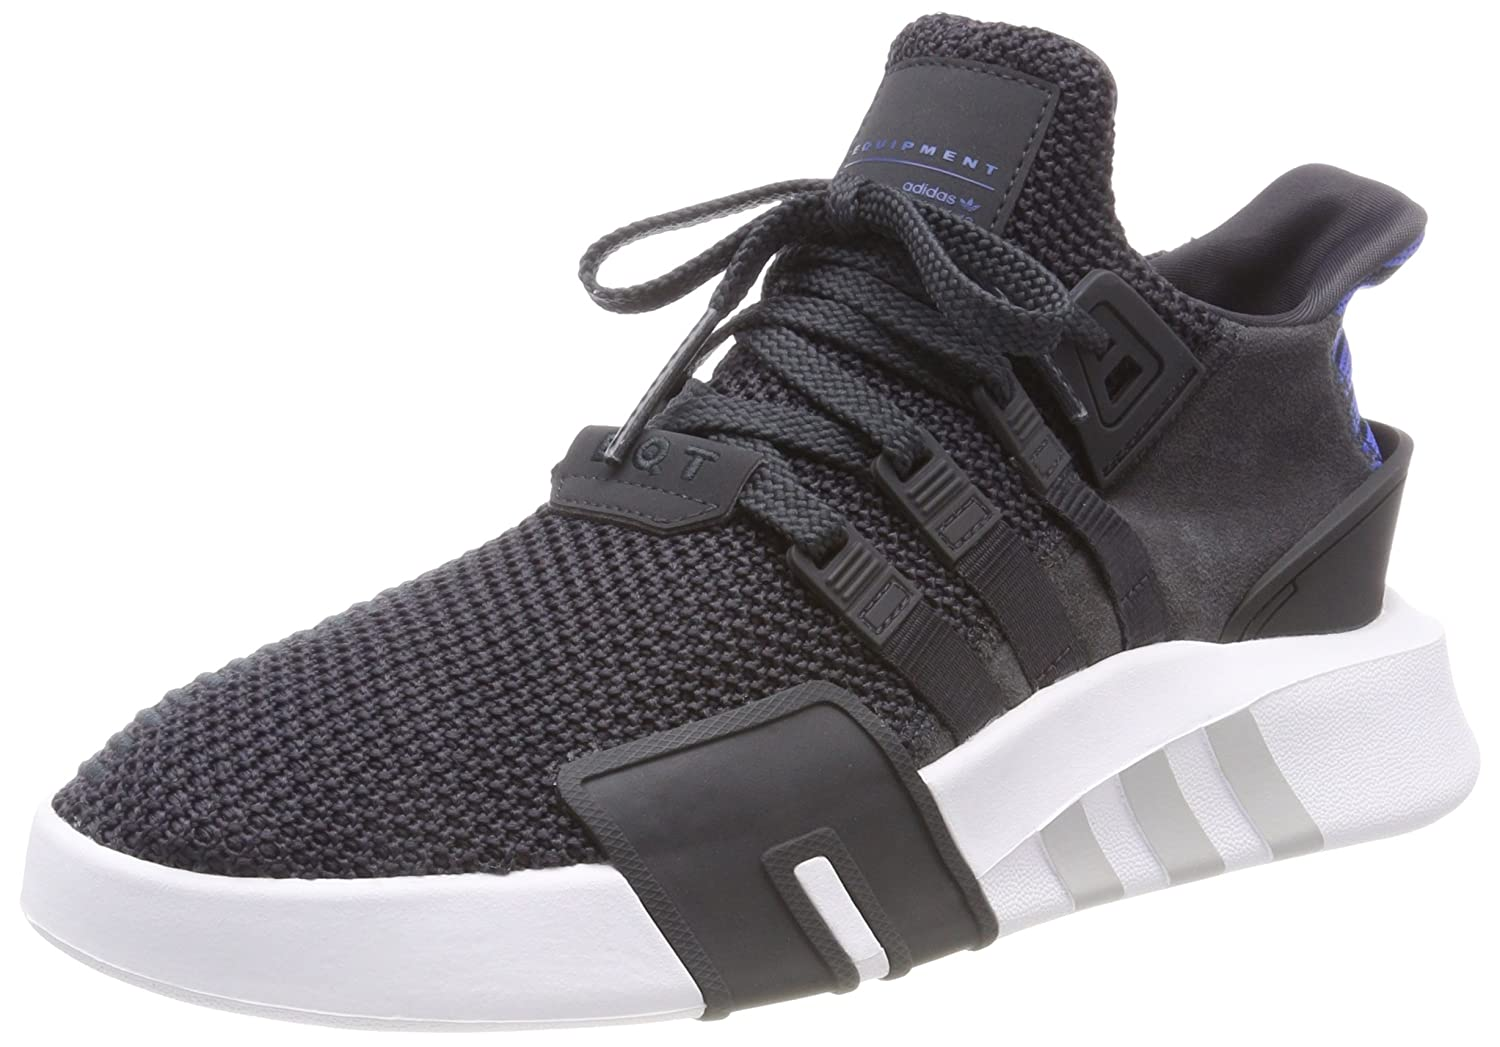 | Adidas Eqt Bask Adv Mens Sneakers Grey